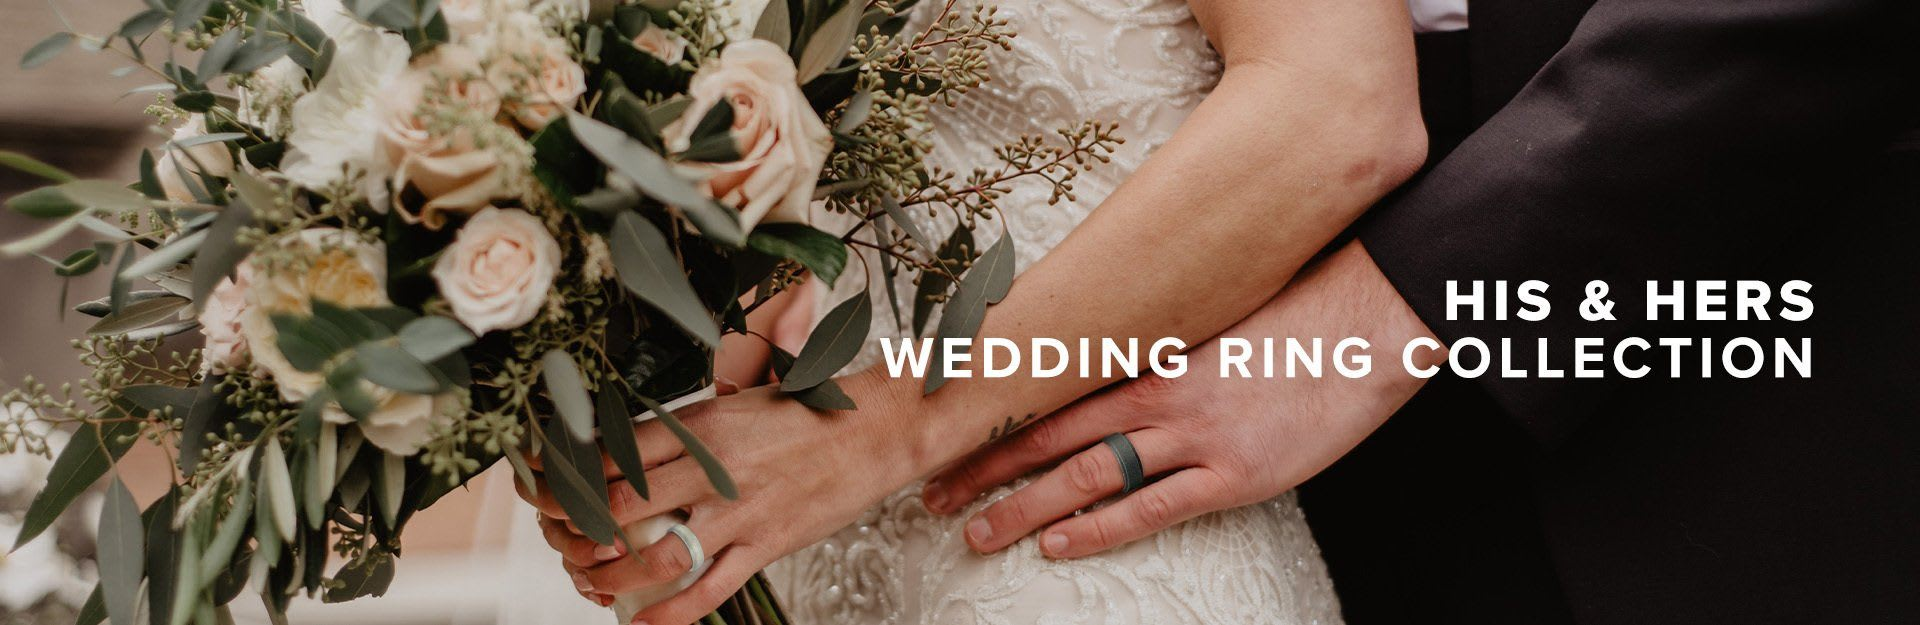 Wedding Ring Collection, a wedding pose of a woman holding her bouquet while her husband stands behind her